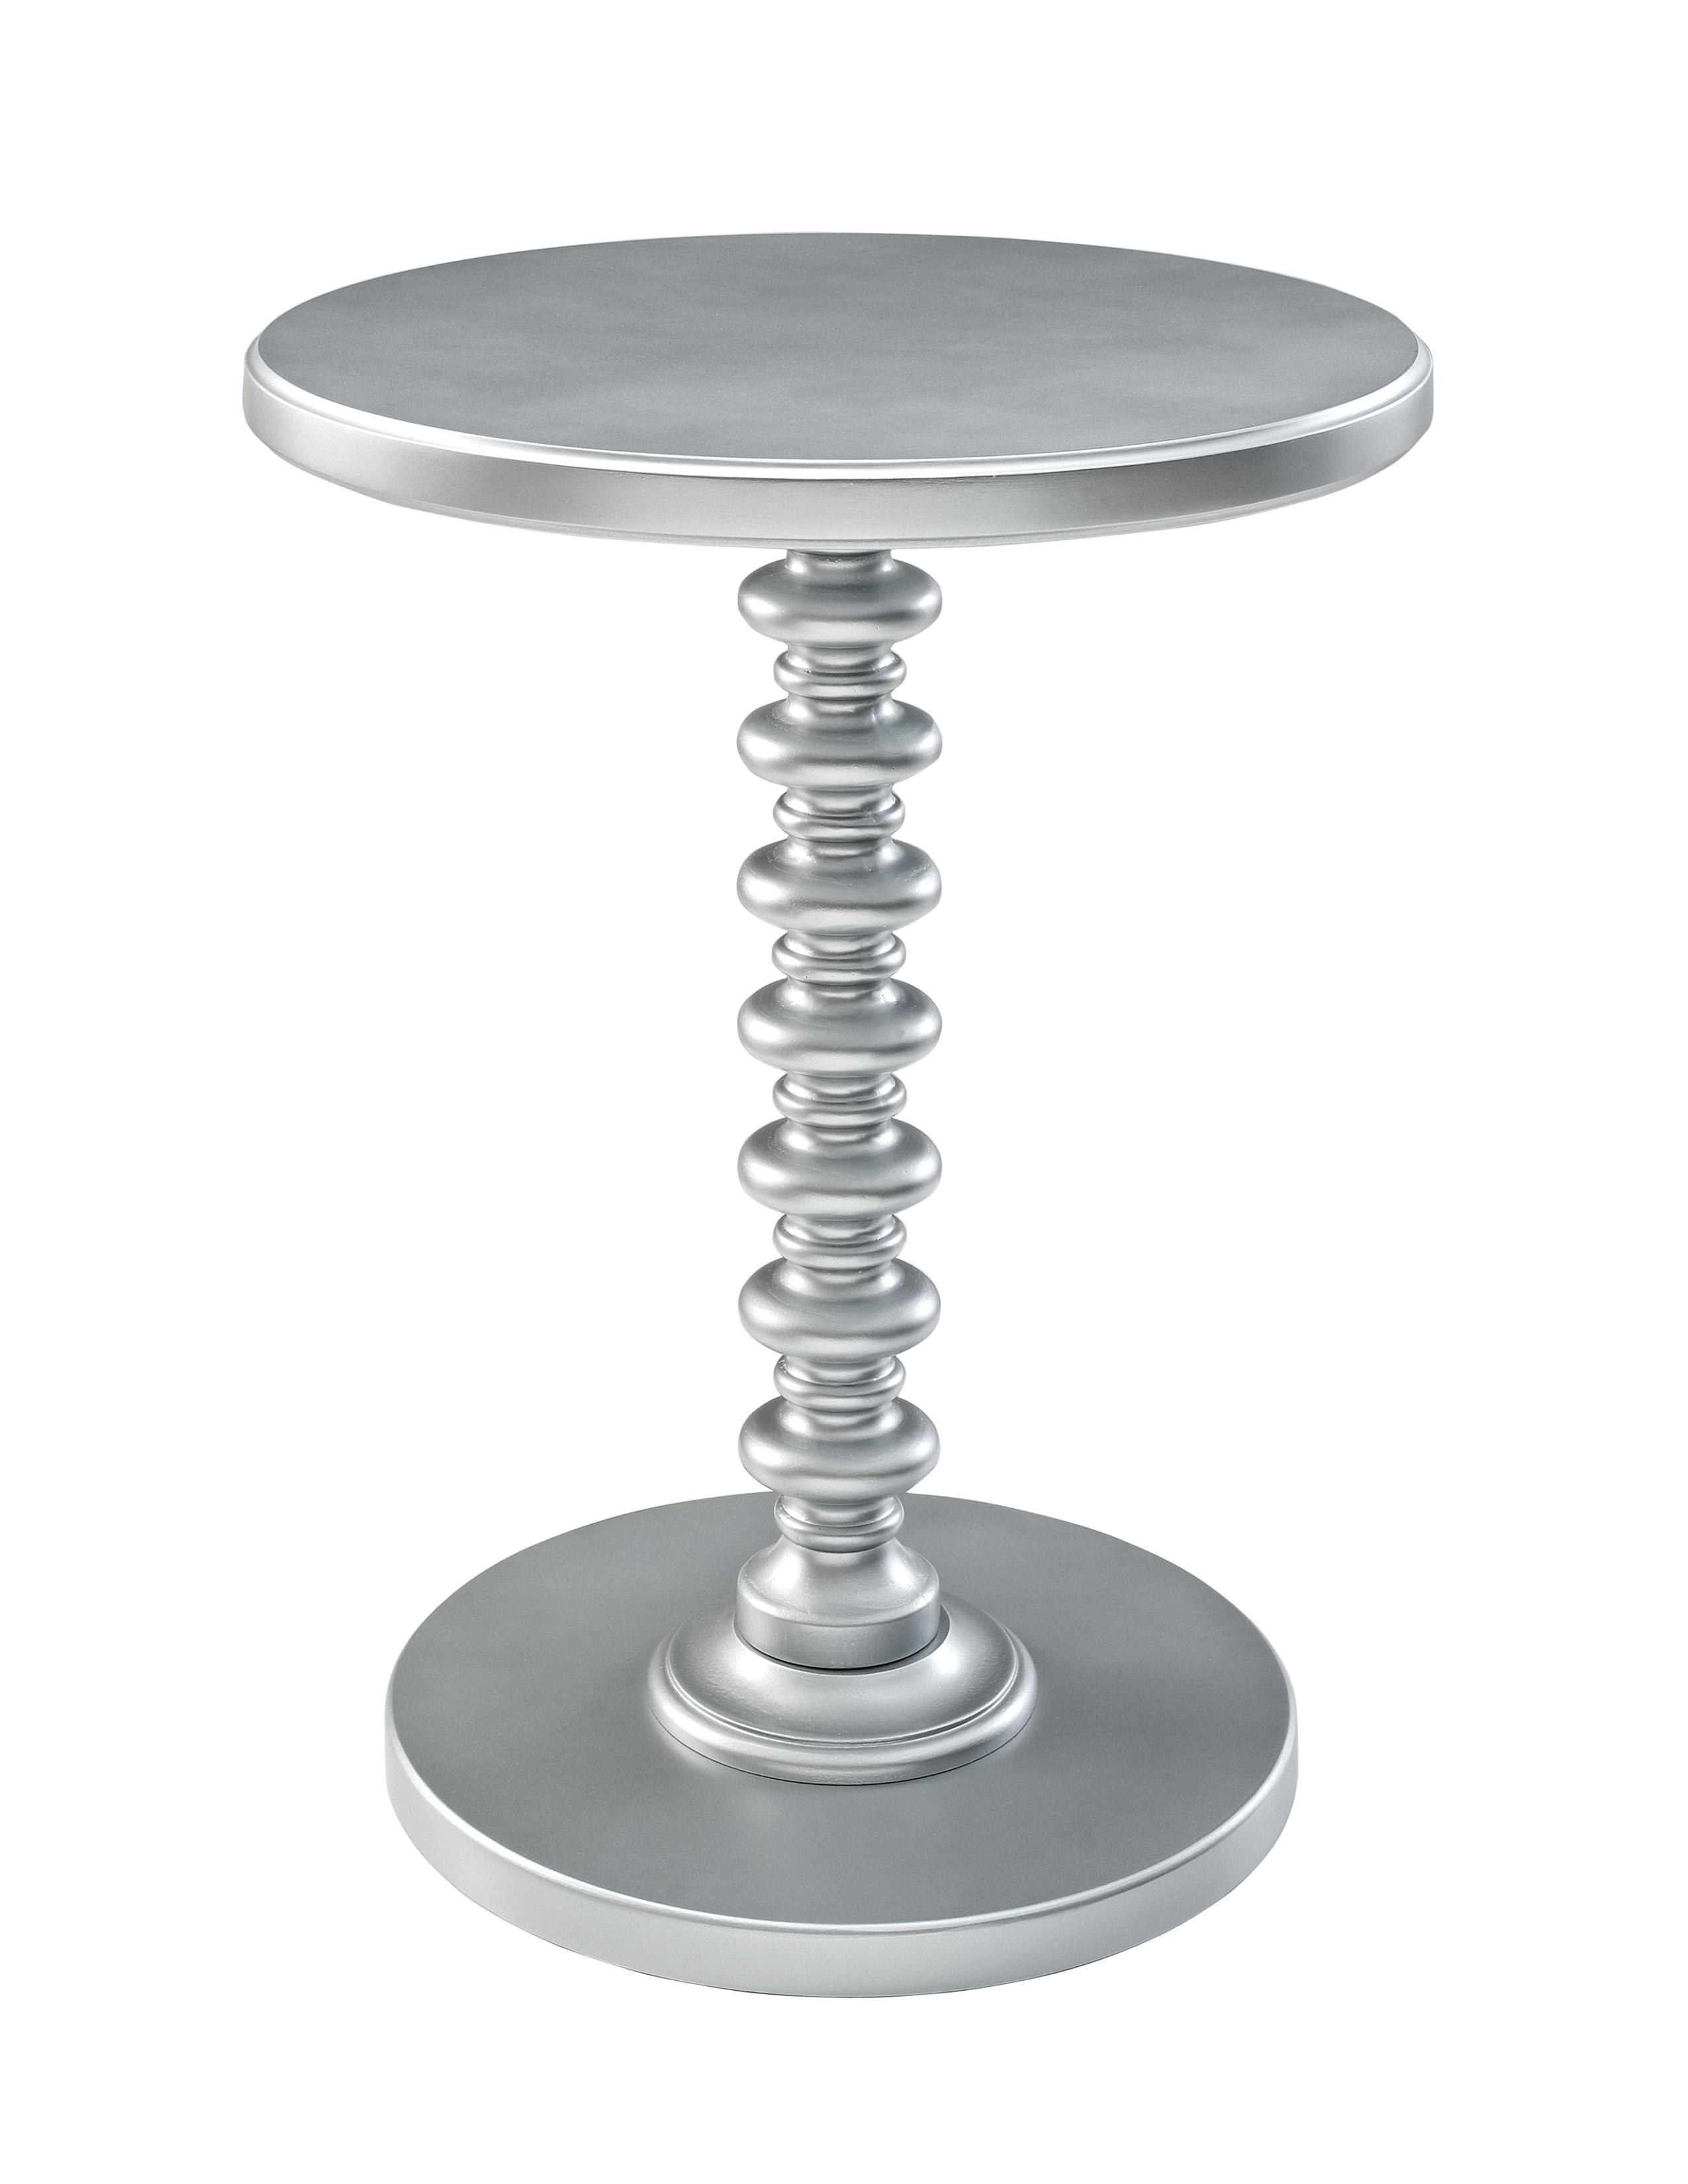 Powell Accent Tables Round Spindle Table - Item Number: 145-269